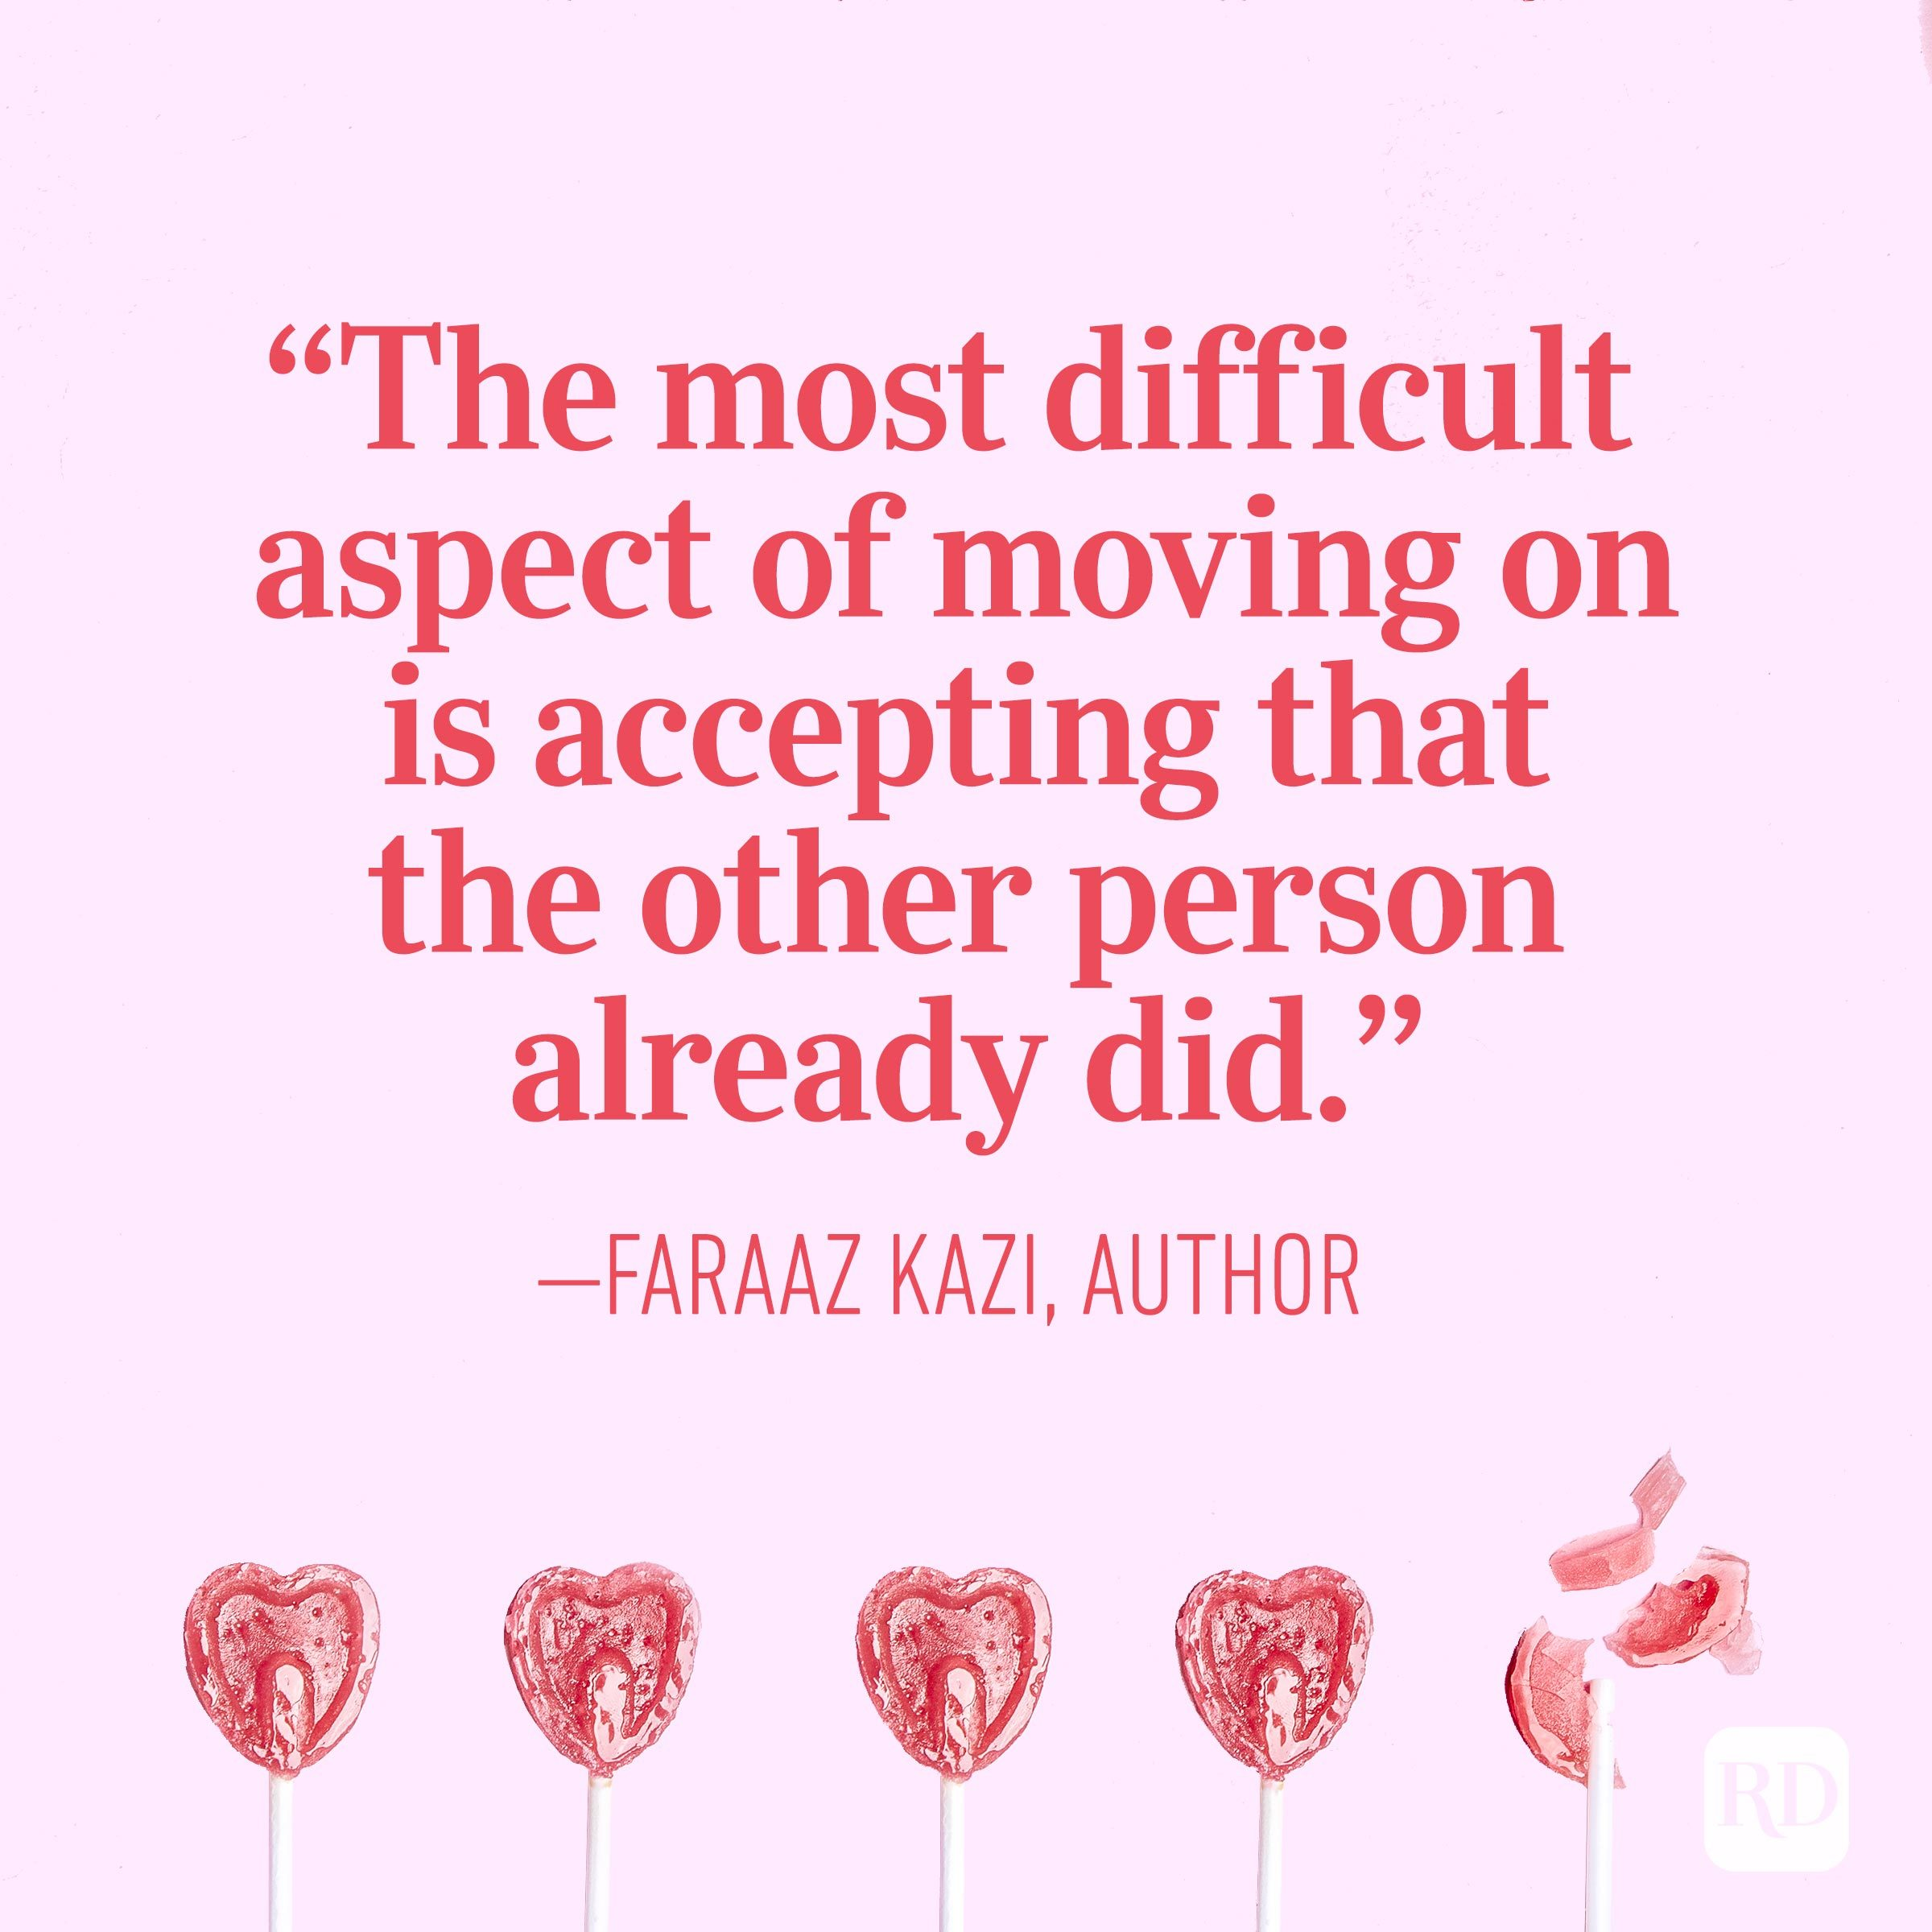 """The most difficult aspect of moving on is accepting that the other person already did."" — Faraaz Kazi, author"